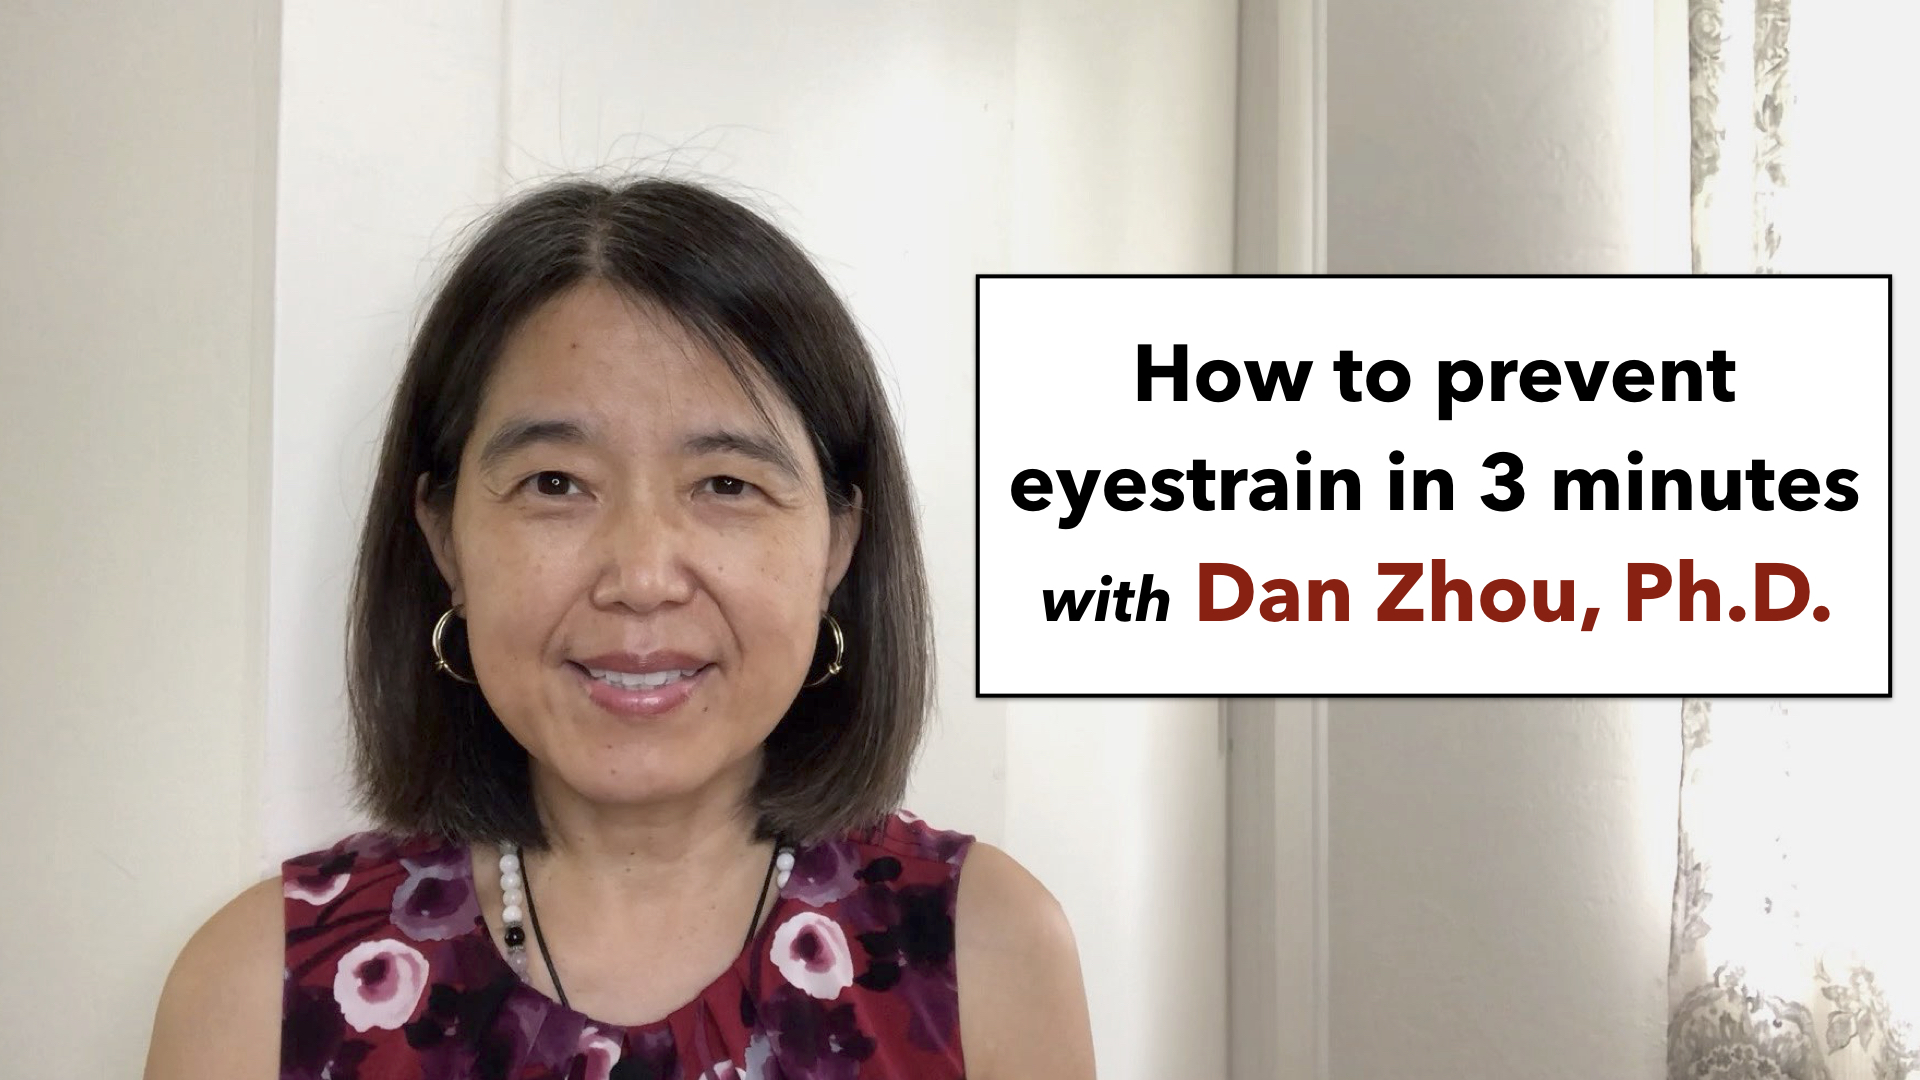 How to prevent eyestrain in 3 minutes